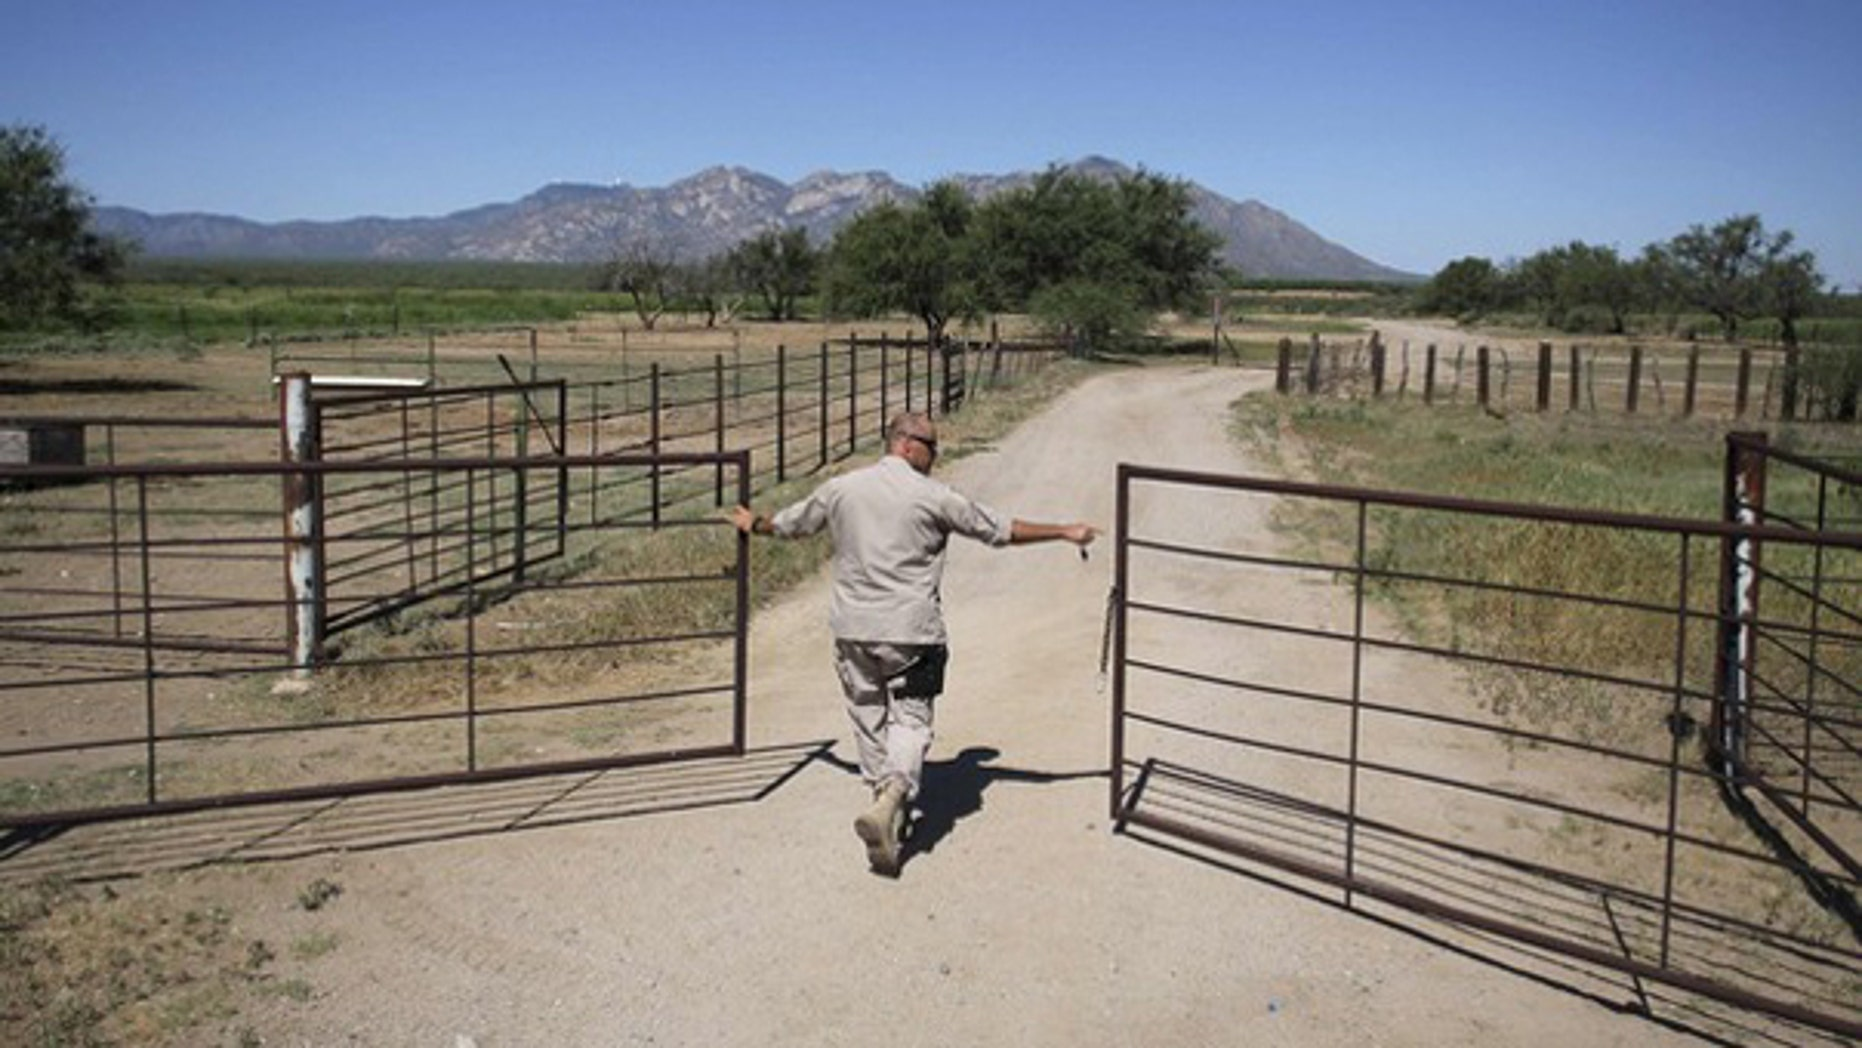 A Border Patrol agent opens a gate leading to a dirt road as he searches for illegal immigrants in the dessert of Pima County, Ariz., Aug. 17, 2009. (Reuters Photo)